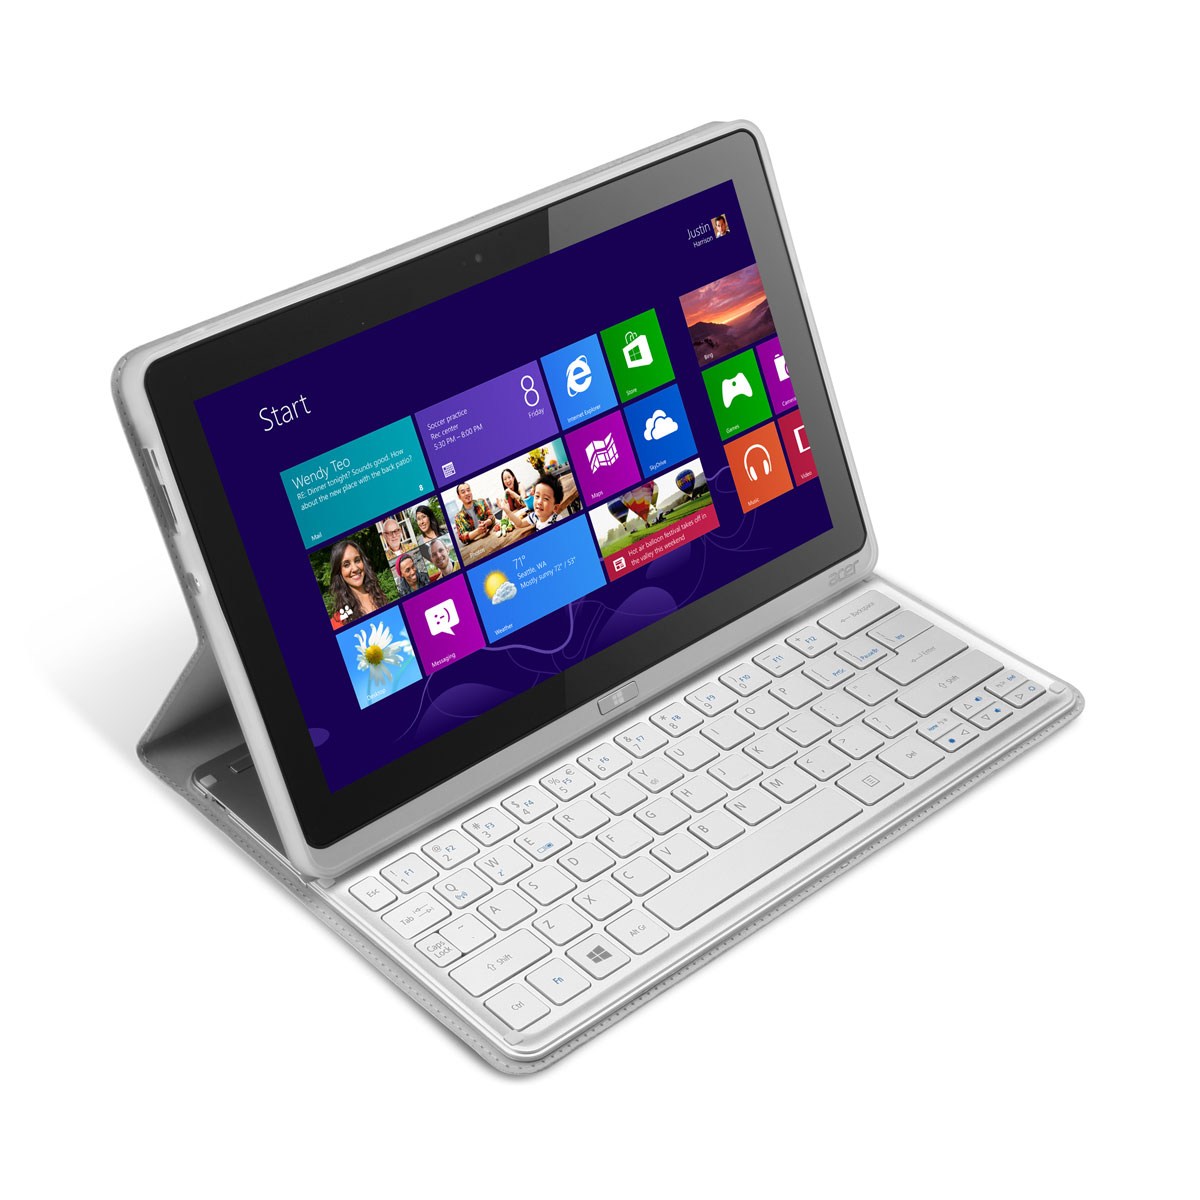 acer iconia tab w700p tablette tactile acer sur. Black Bedroom Furniture Sets. Home Design Ideas